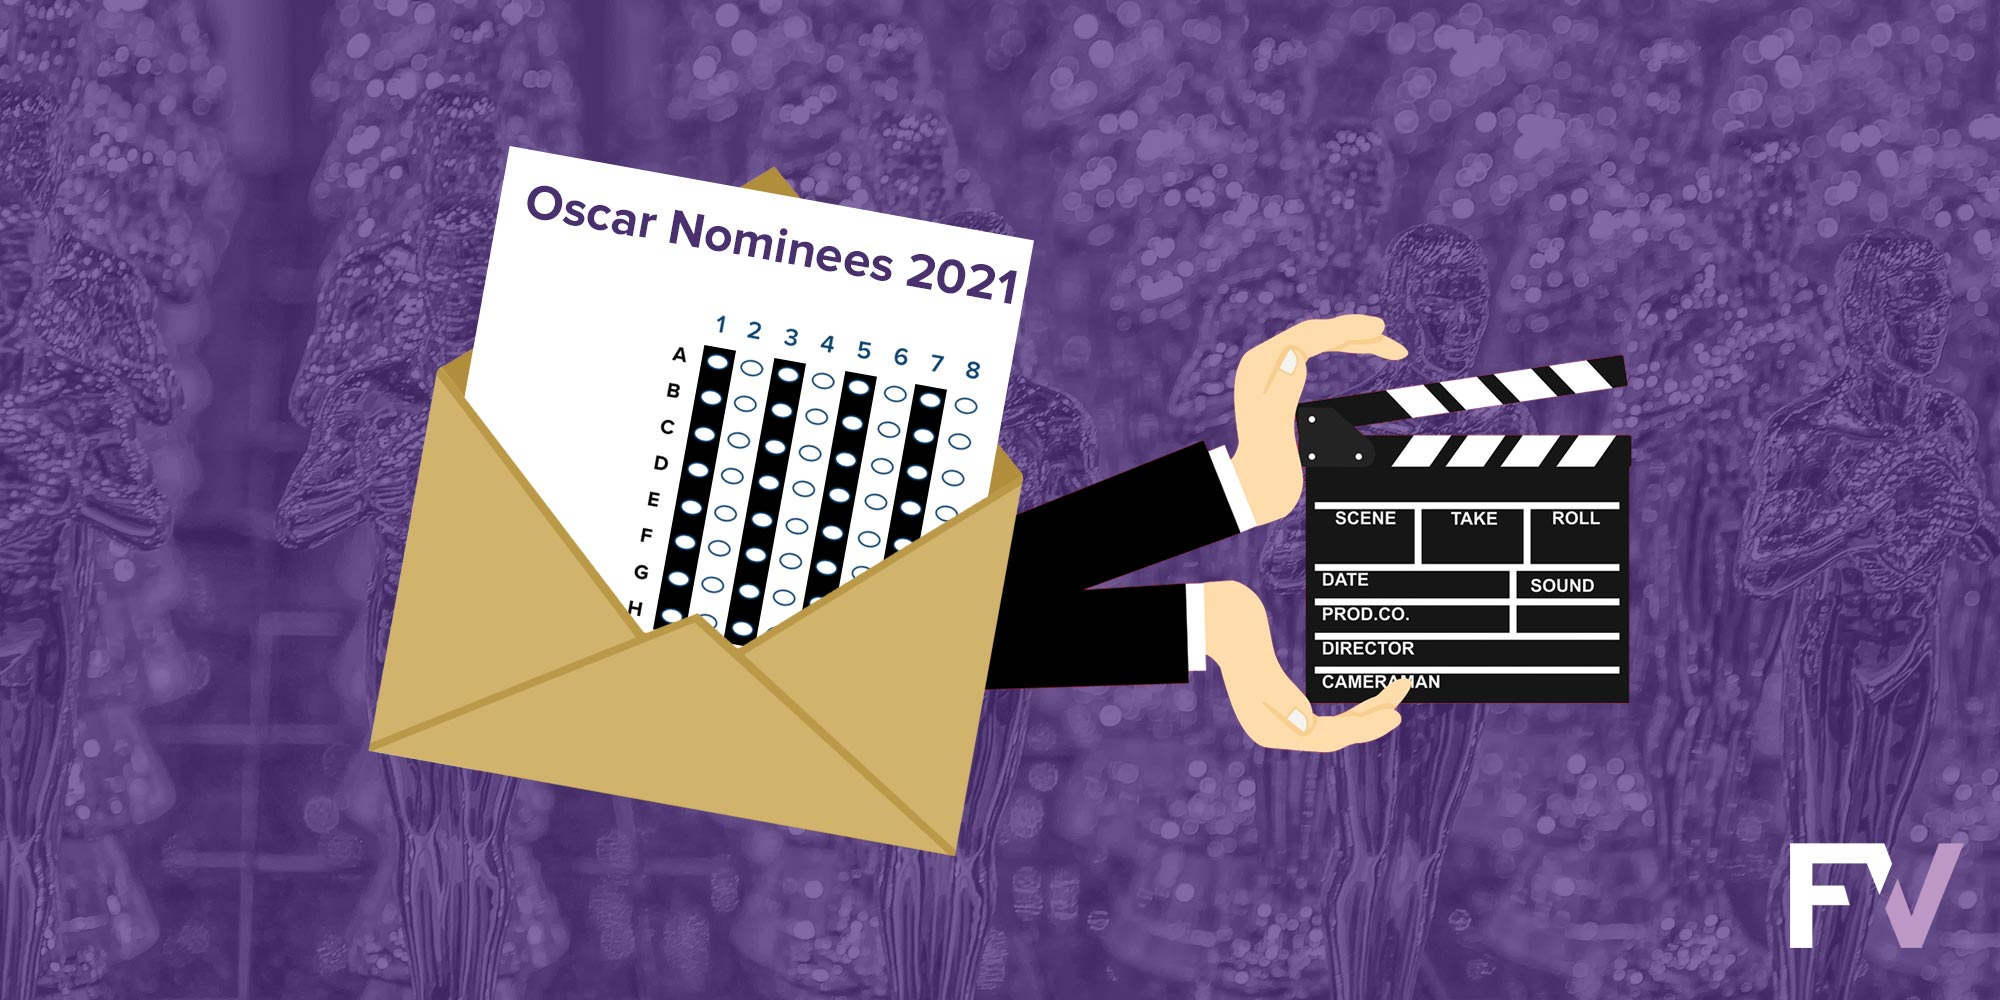 Oscar nominees selected through ranked choice voting